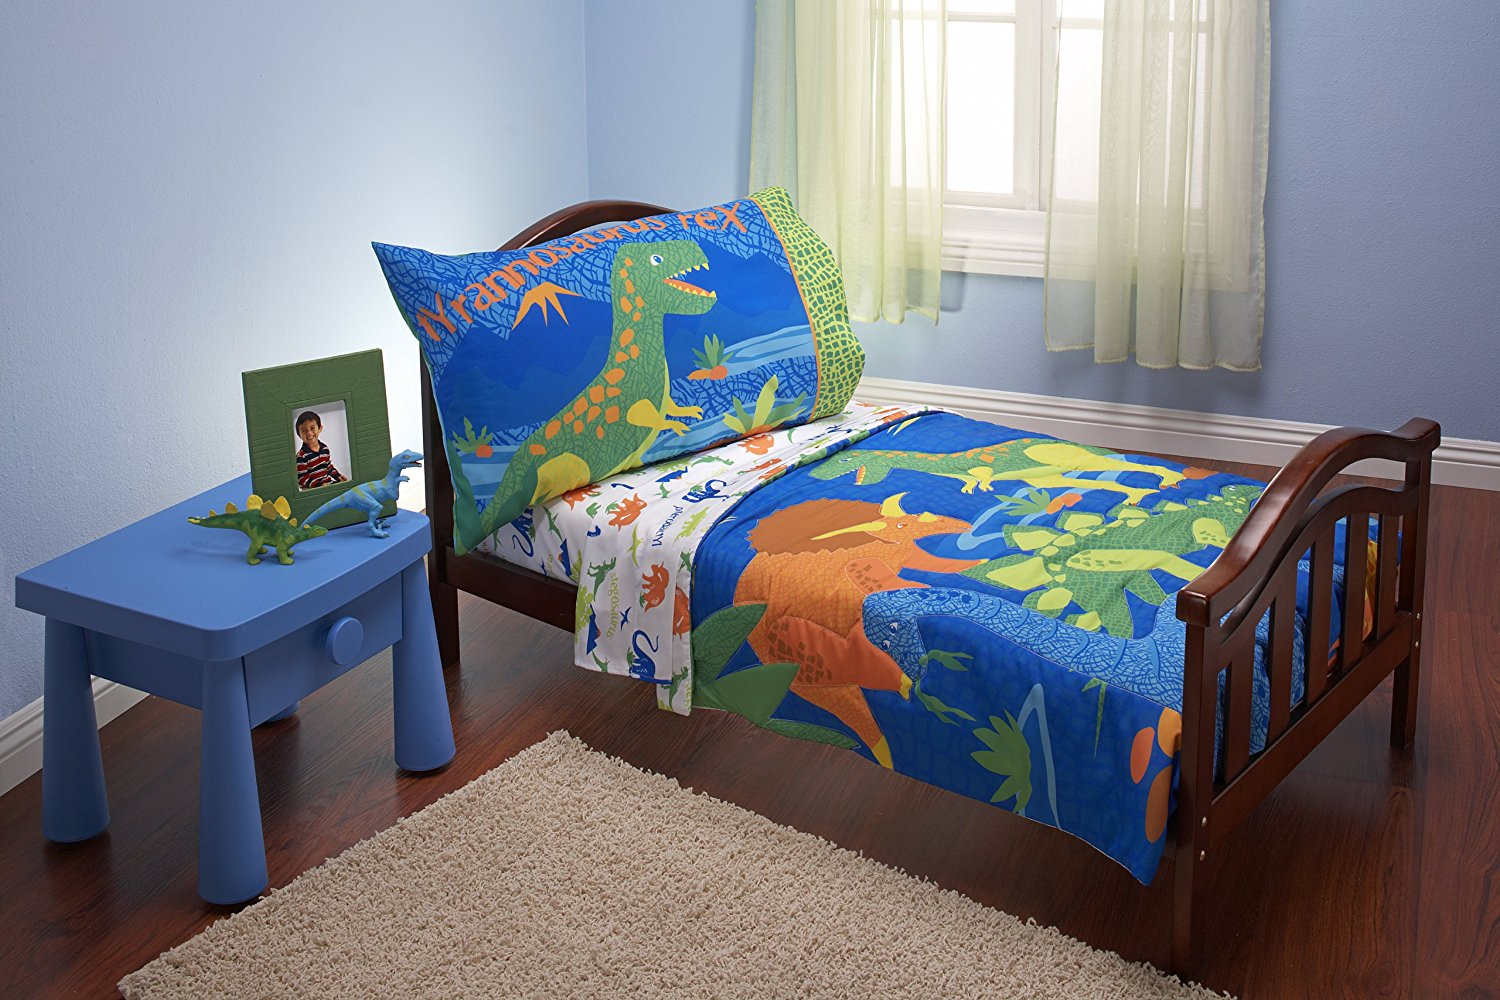 Lego Star Wars Bedding Twin | Spiderman Bed in A Bag | Bubble Guppies Bedding